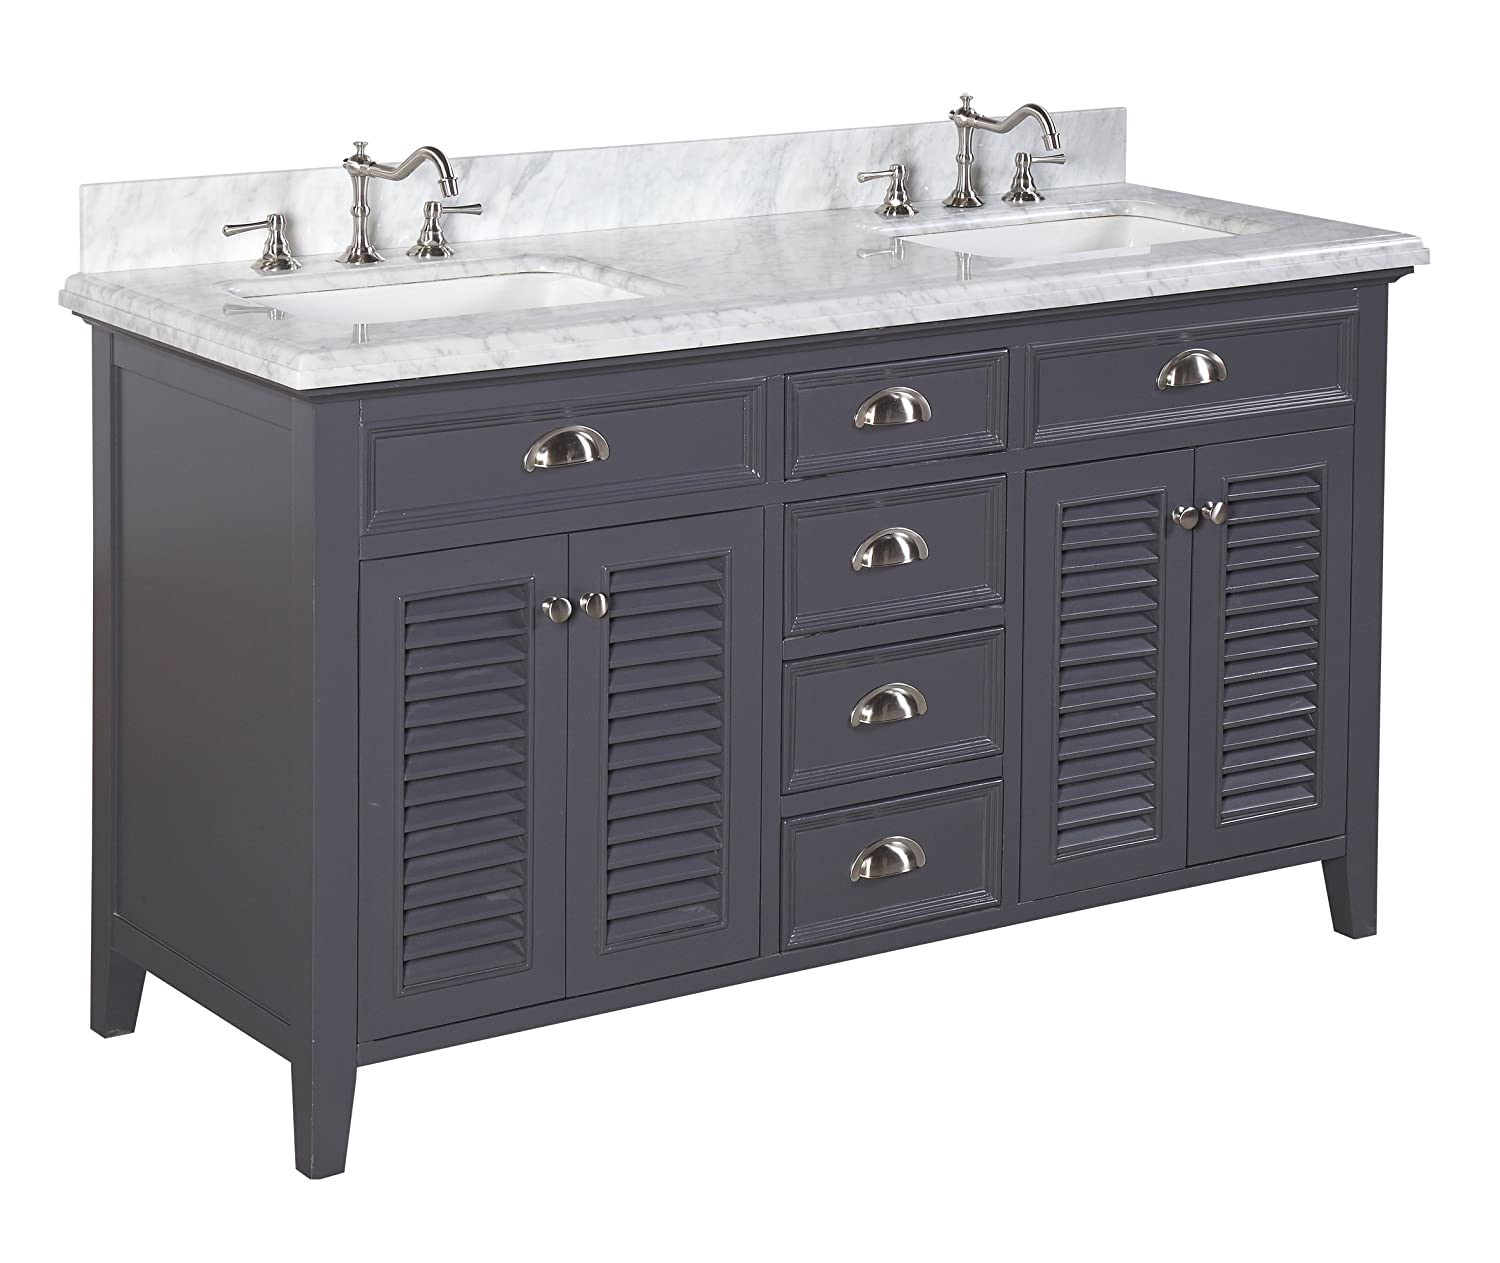 Kitchen bath collection kbc sh602gycarr savannah double sink bathroom vanity with marble for Double sink countertop bathroom